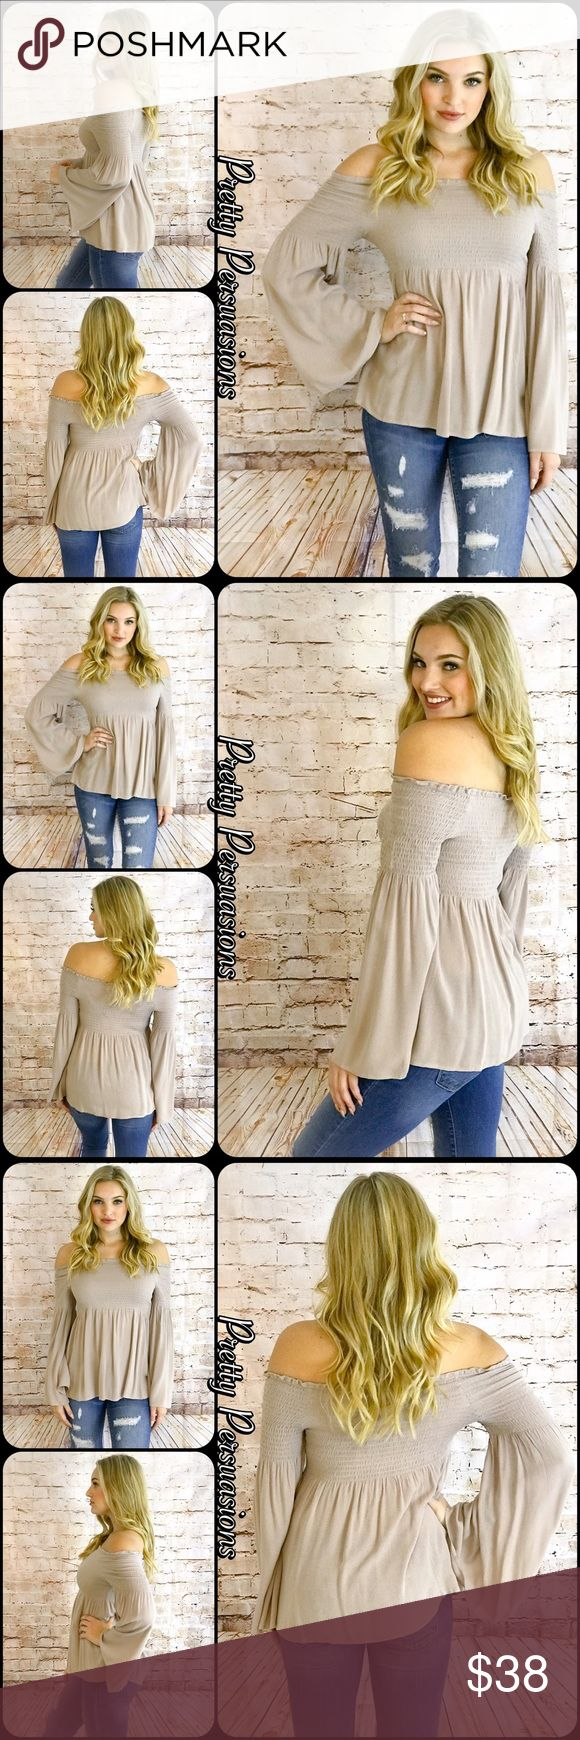 "NWT Taupe Long Bell Sleeve Off Shoulder Top NWT Tan Taupe Long Bell Sleeve Smocked Off Shoulder Top  Available in S, M, L Measurements taken from a Small Length: 15"" Bust: 26"" (Smocked;Has Stretch) Waist: 32"" ** Measurements taken unstretched **  * Also available in Navy & Black in separate listings *   Rayon  Features • smocked stretchy upper for accommodating stay in place fit • long bell sleeves • relaxed, easy fit • soft, breathable material  Bundle discounts available No pp or trades…"